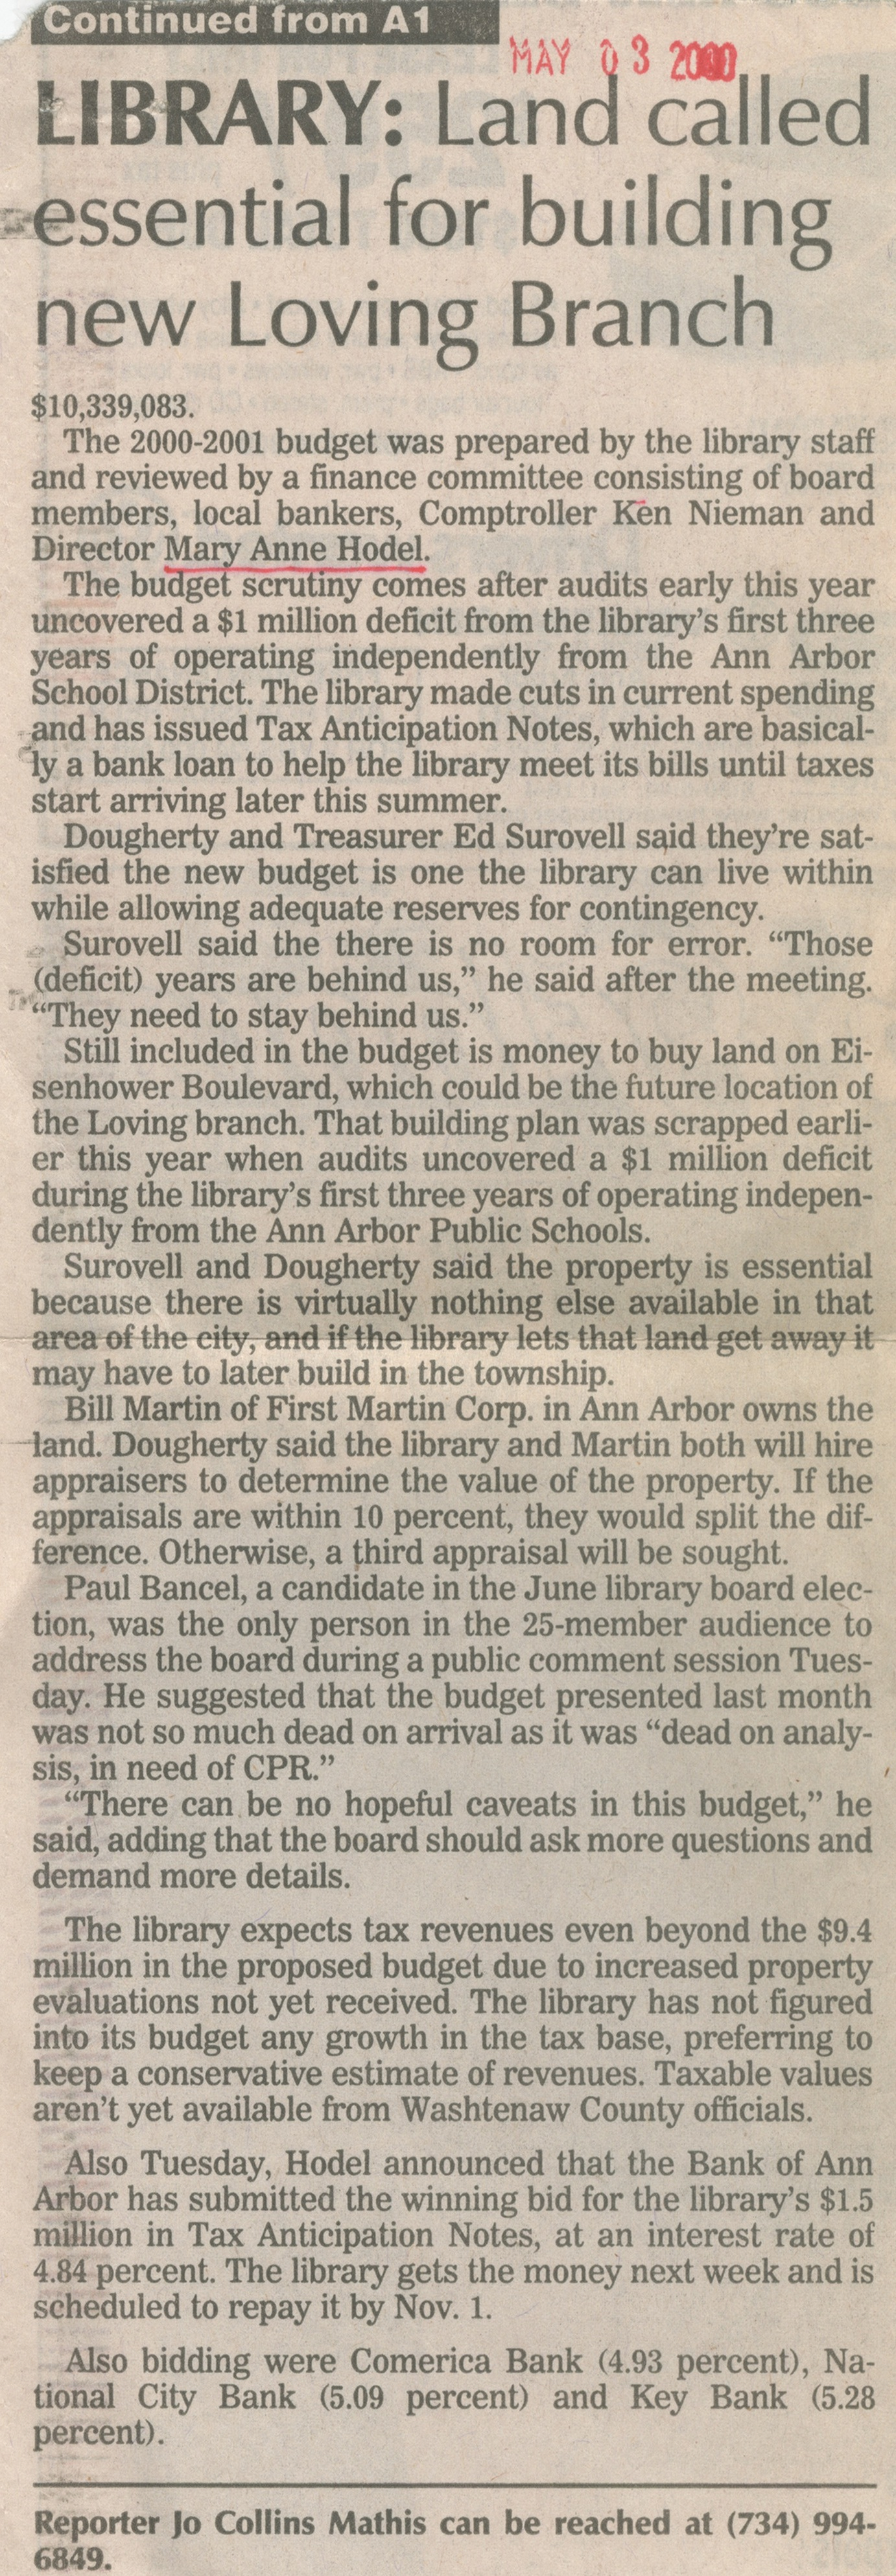 No Layoffs In Revised Library Budget image